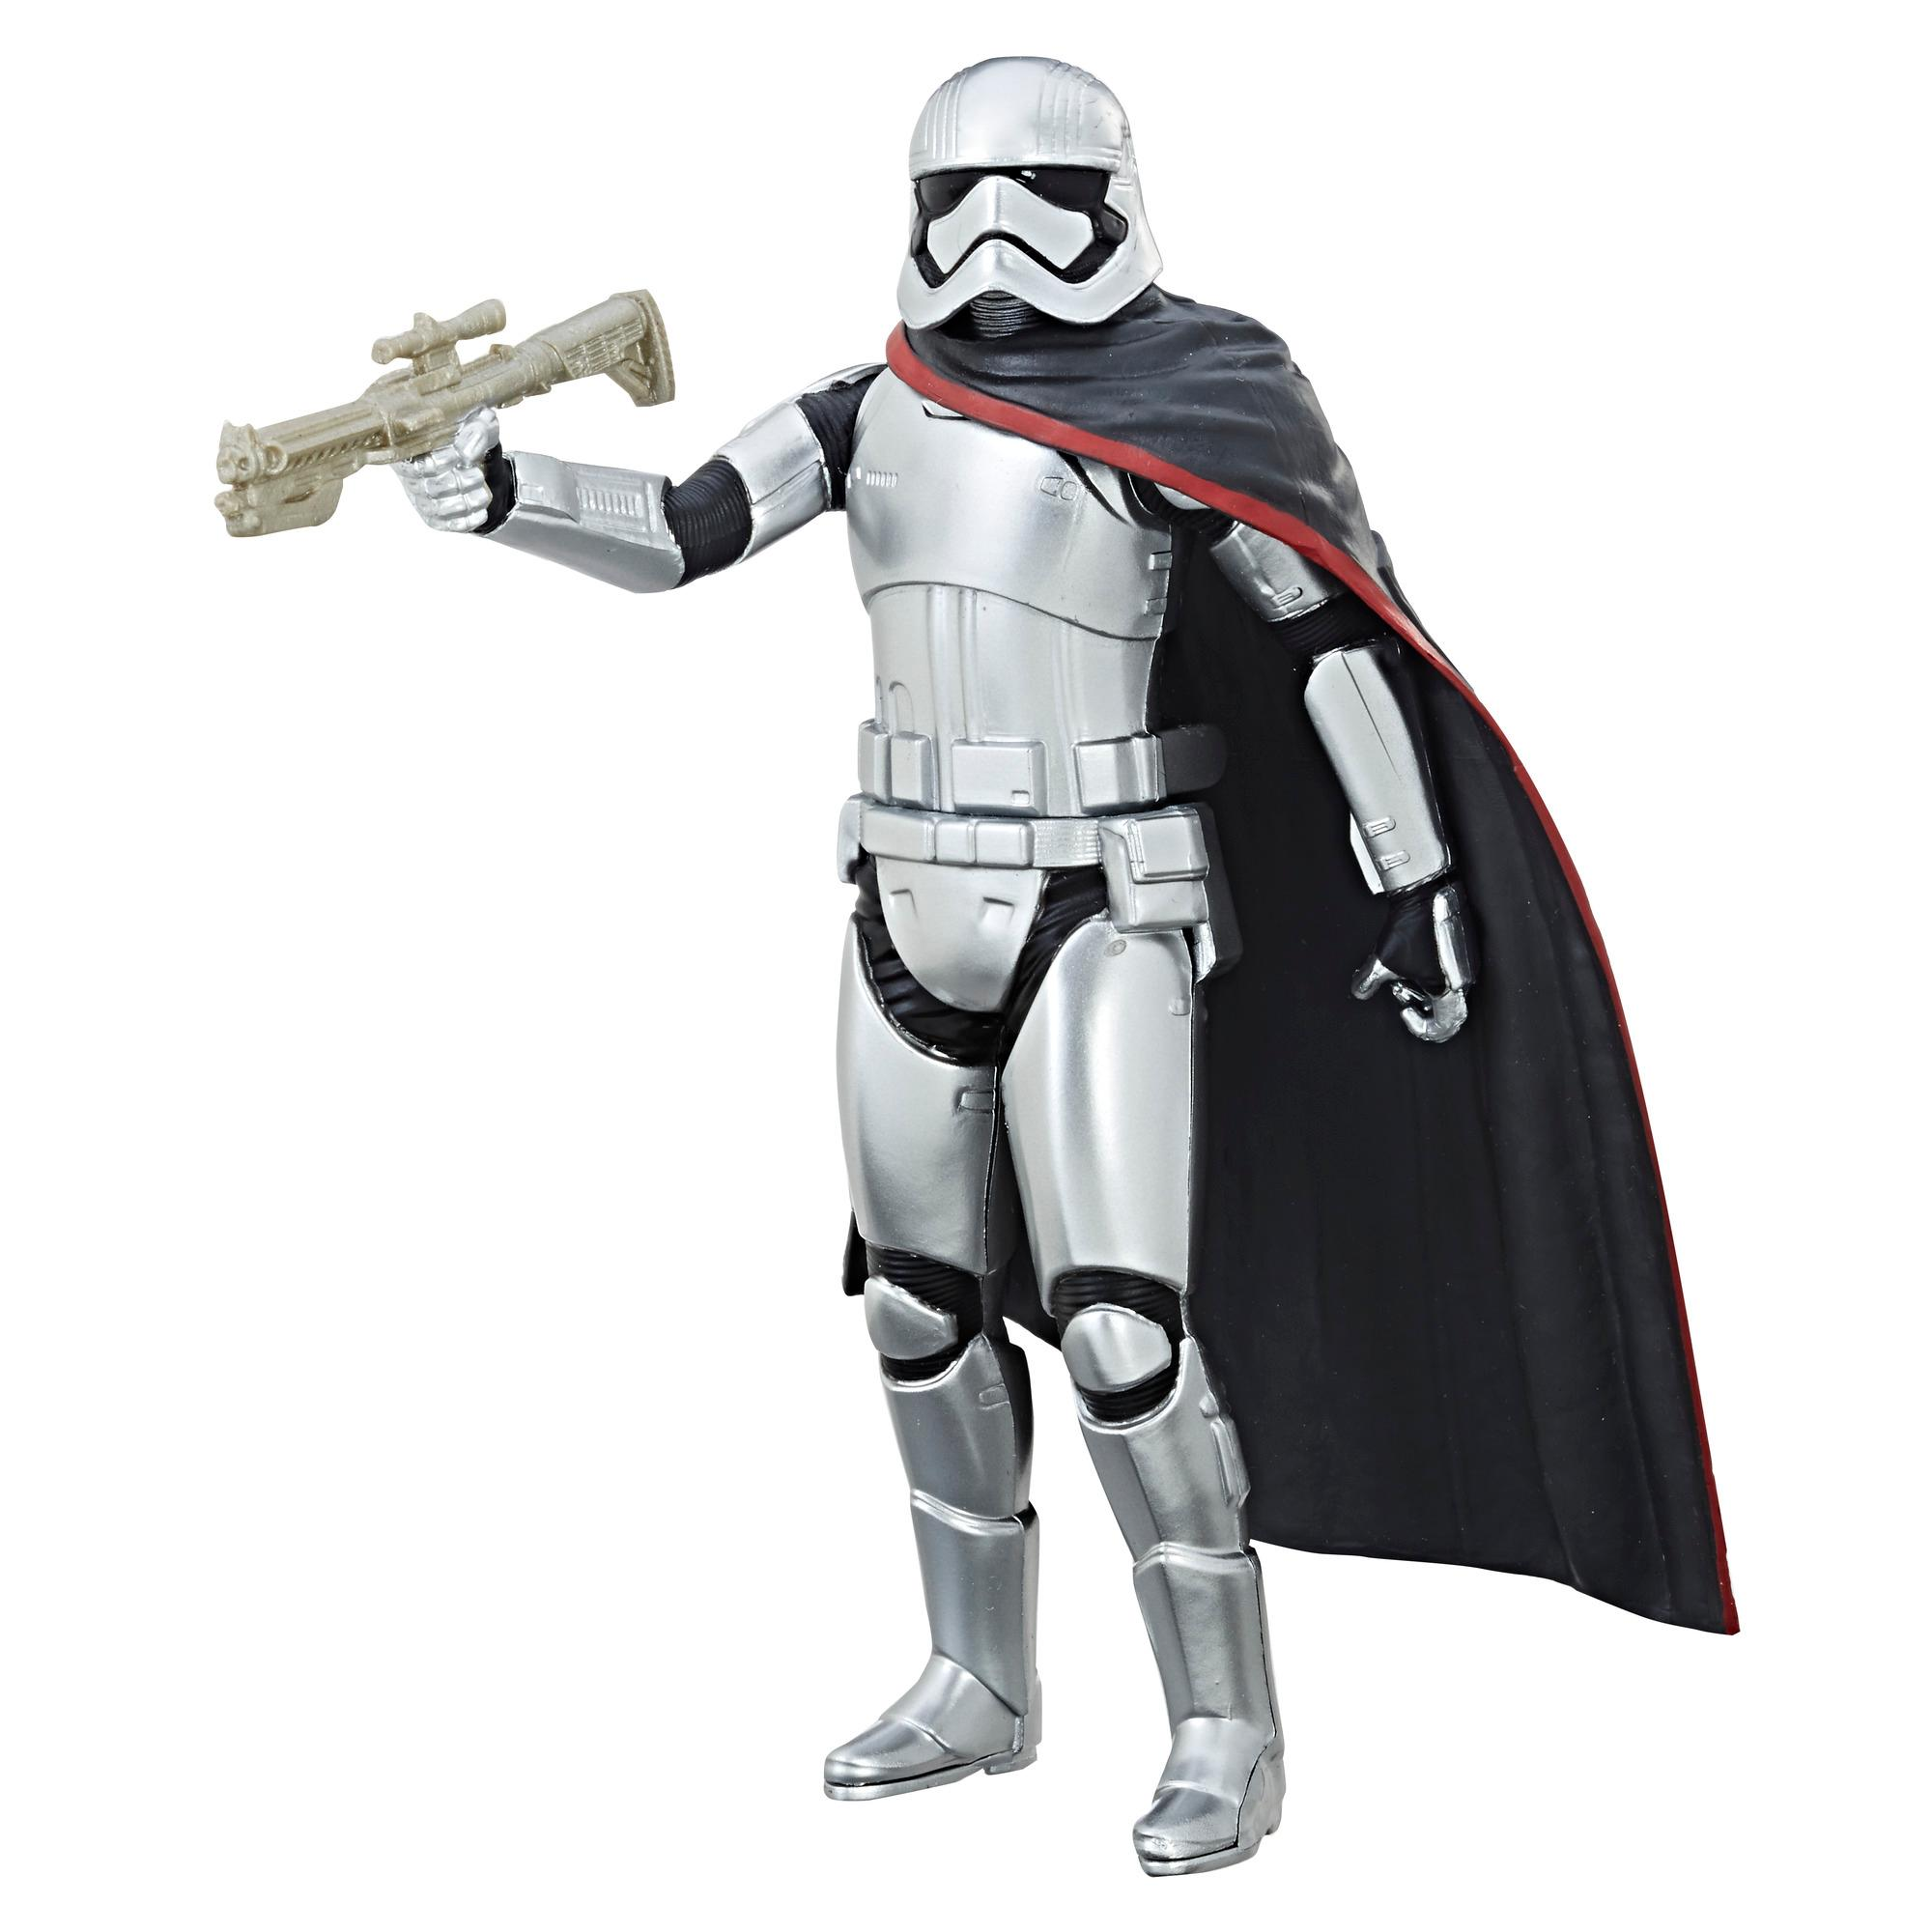 Star Wars: The Force Awakens 6-inch Captain Phasma